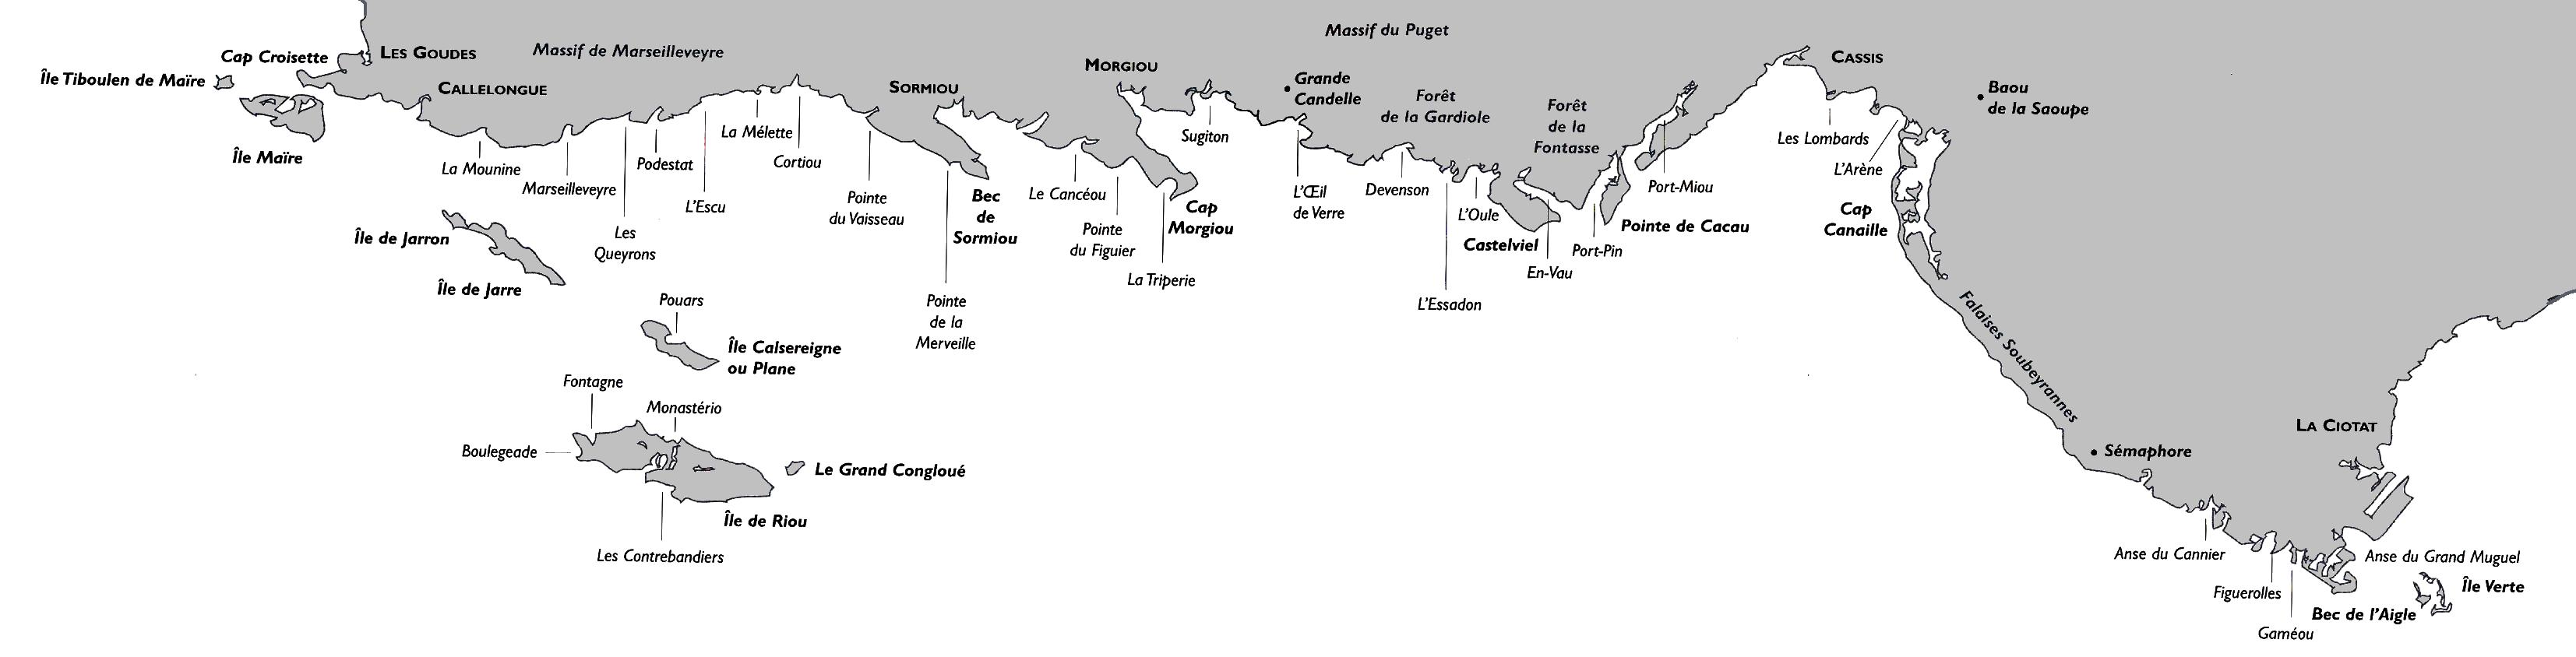 Geology of the Calanques National Park, South of France